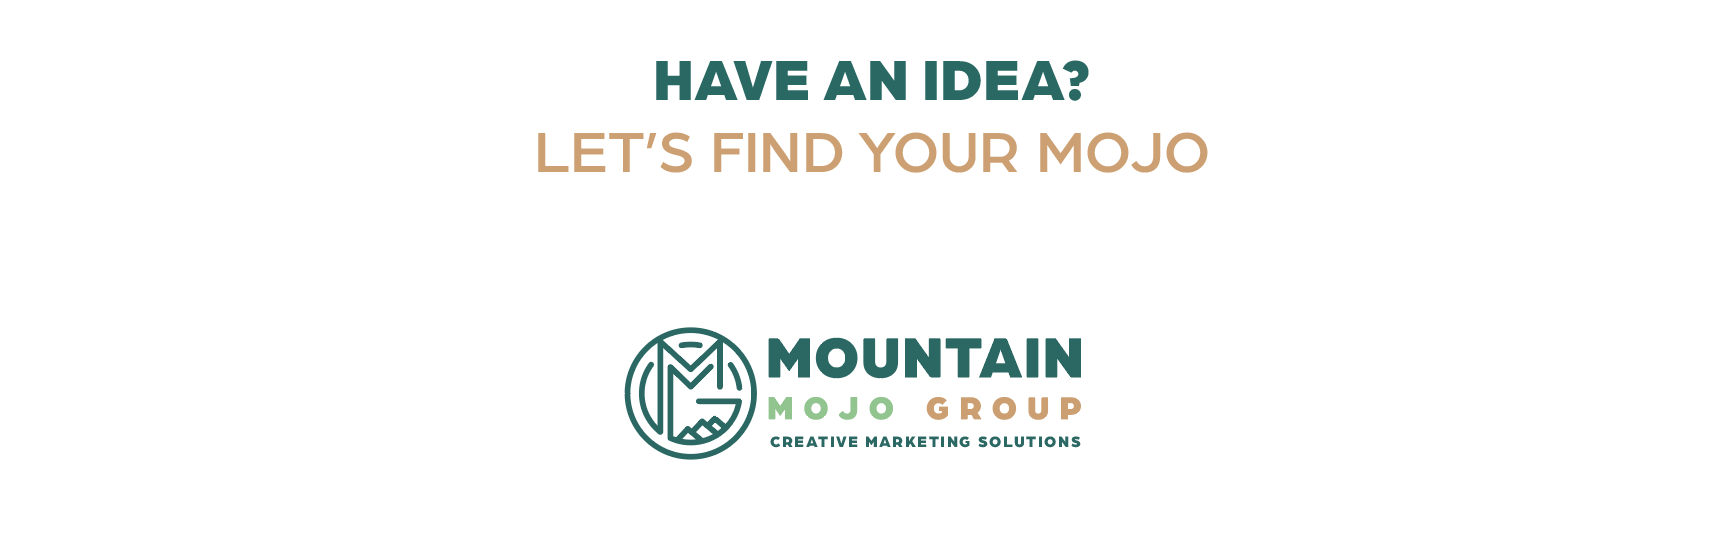 "The text ""Have an idea? Let's find your Mojo,"" lies above the Mountain Mojo Group logo."